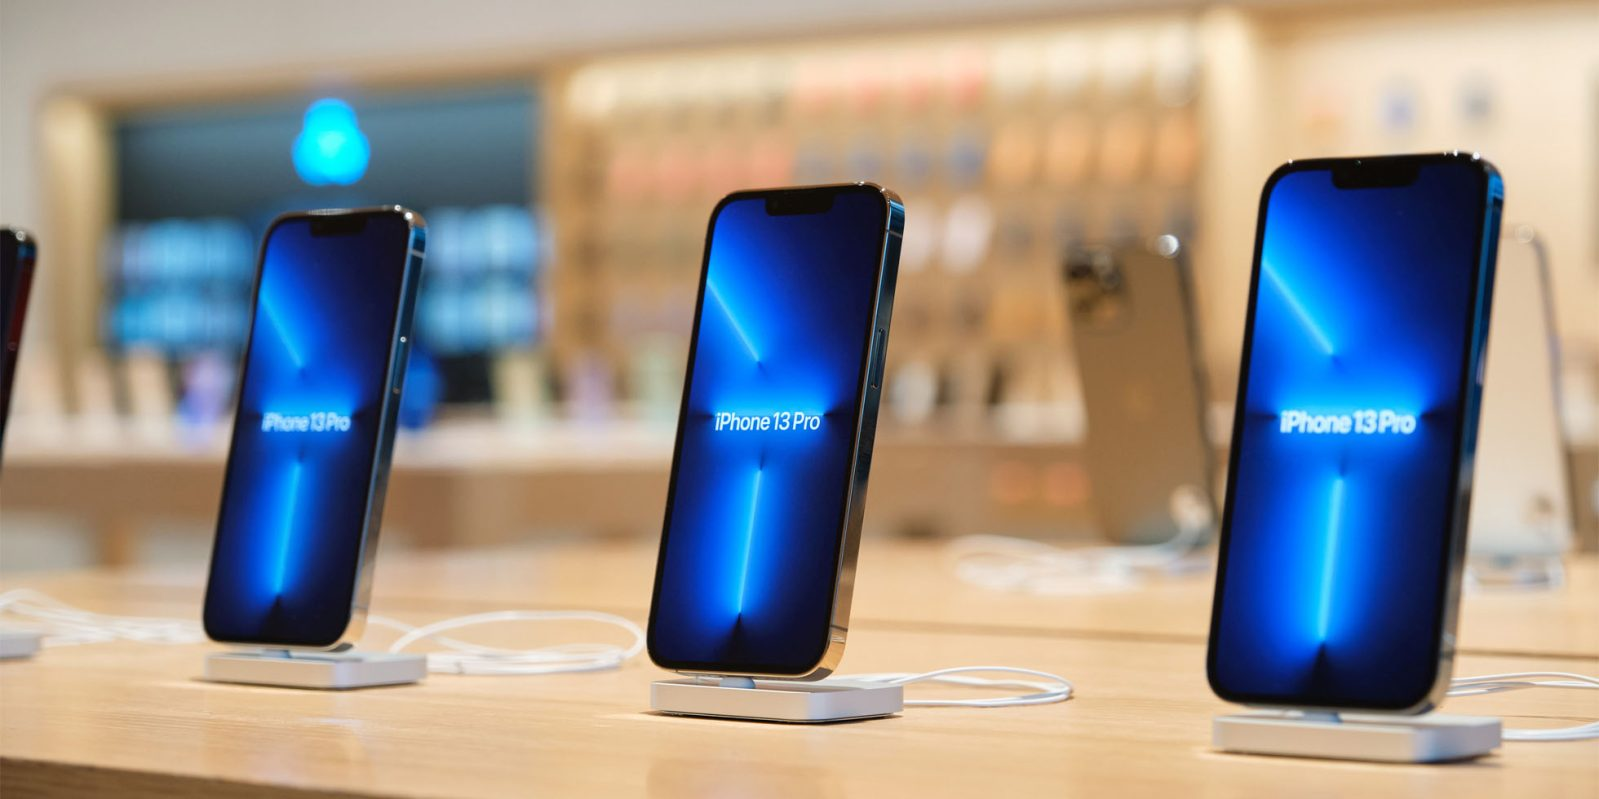 2021 smartphone production is hit hard by chip shortage – Counterpoint